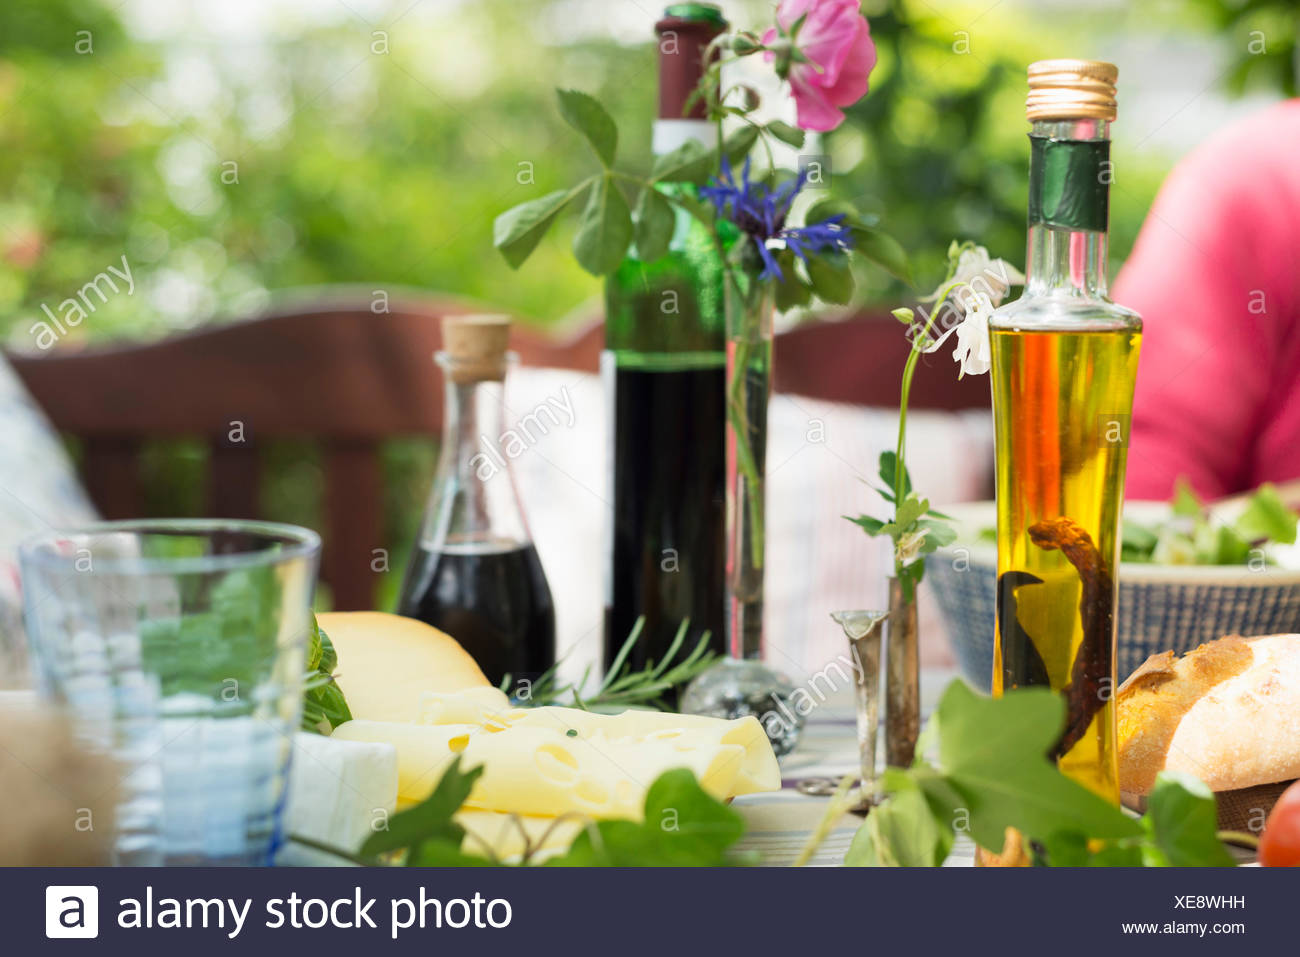 Huiles et vinaigre sur table, Close up Photo Stock